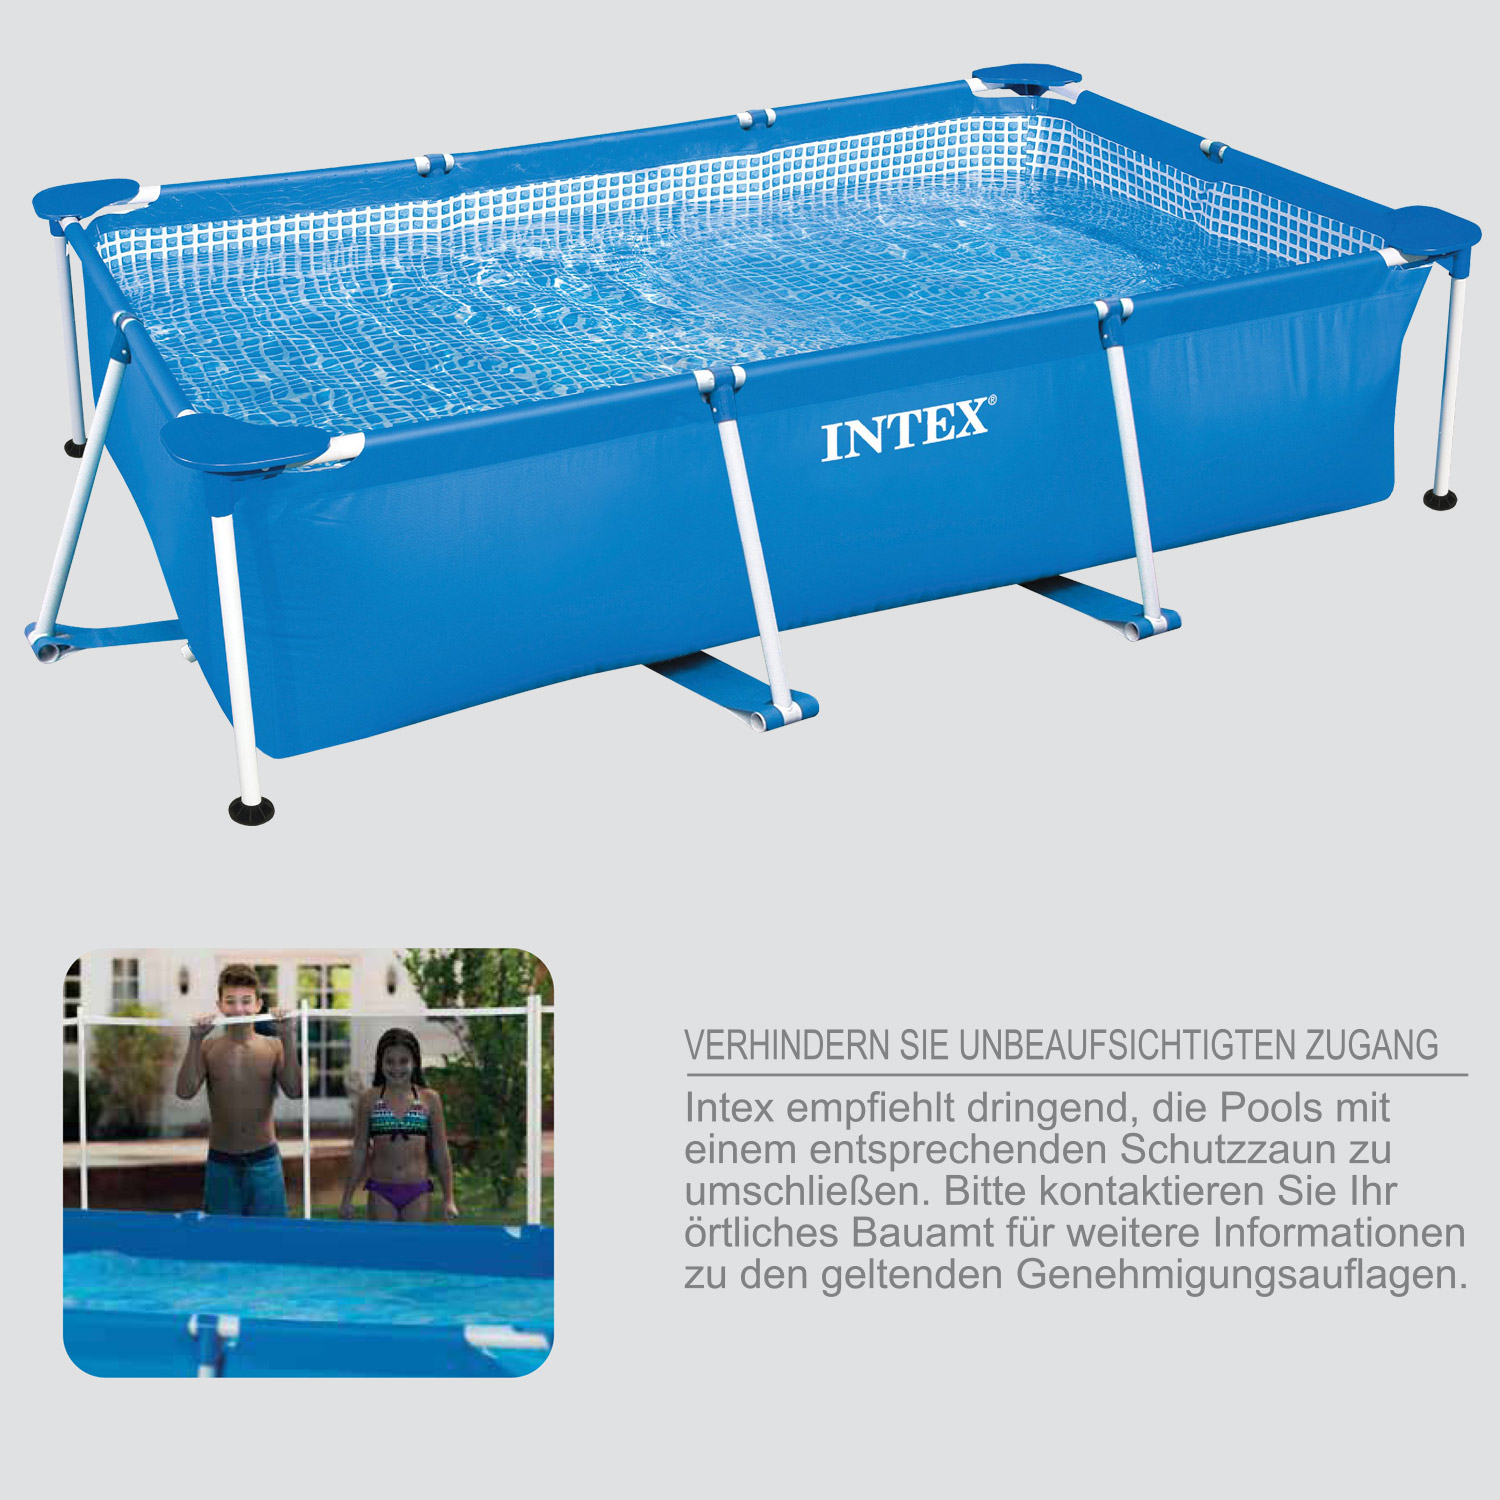 Intex 300x200x75 cm swimming pool mit sandfilter for Aufblasbarer pool mit sandfilteranlage